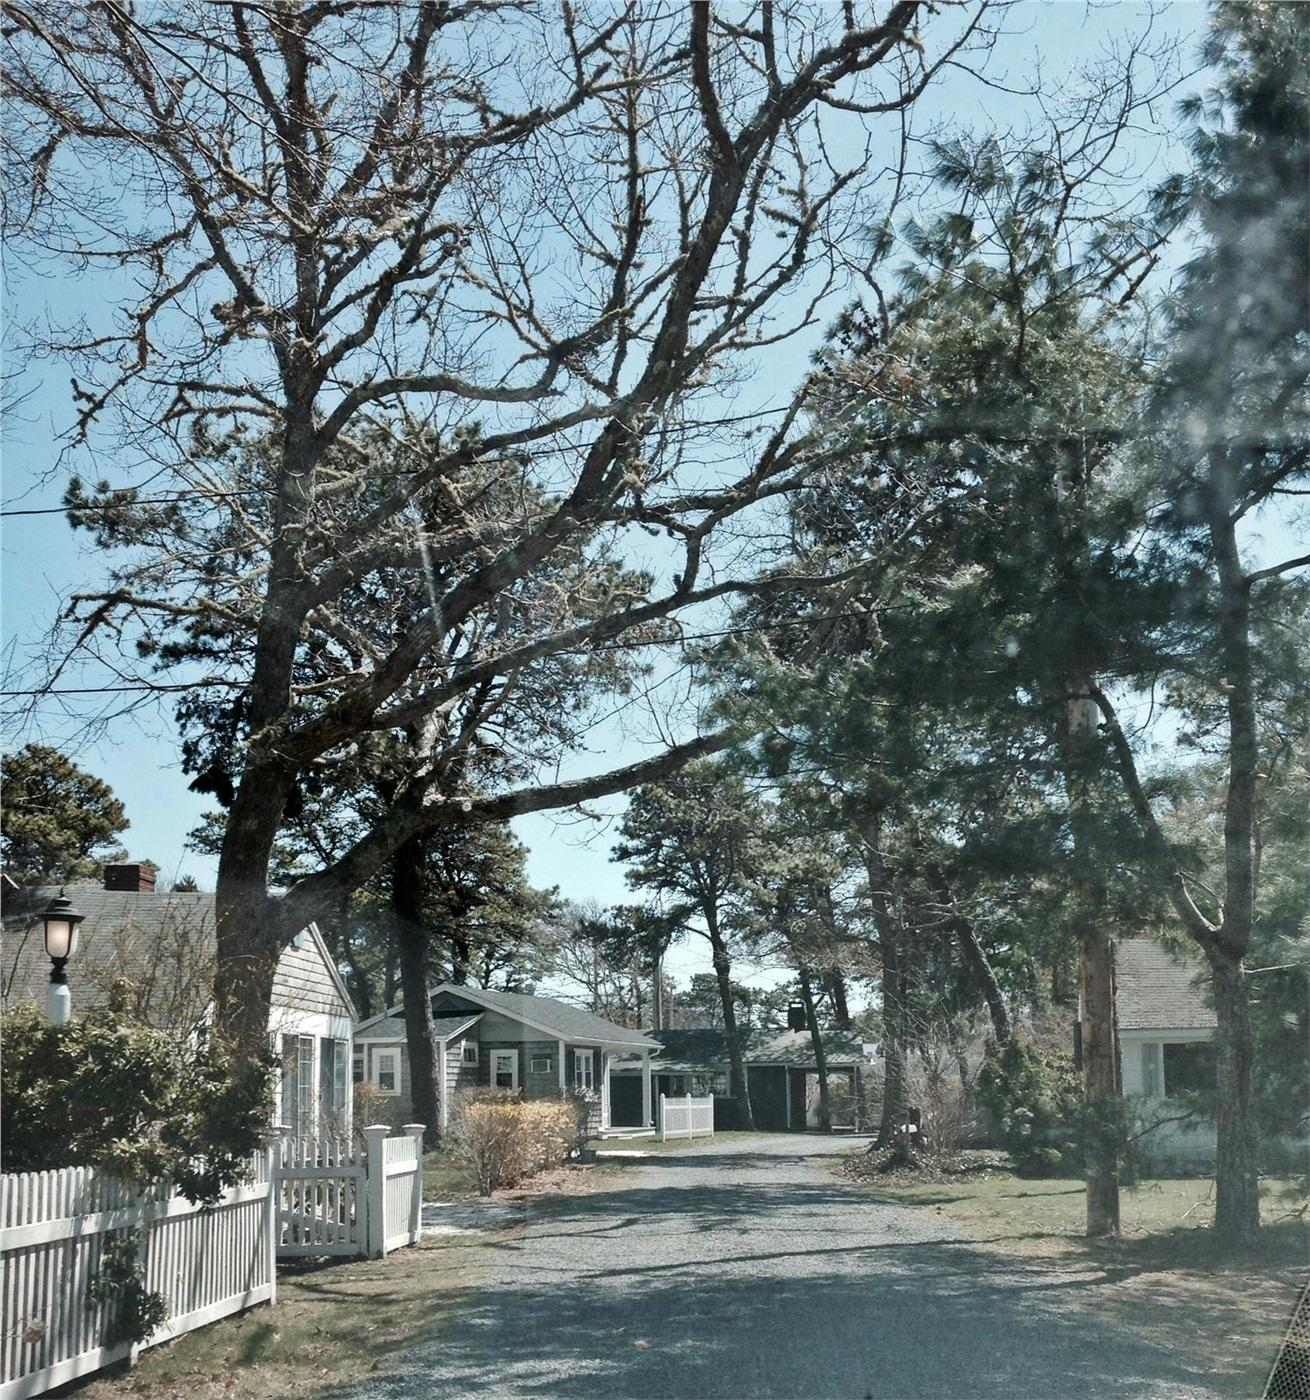 Dennis Vacation Rental Home In Cape Cod MA 02639, 3/10